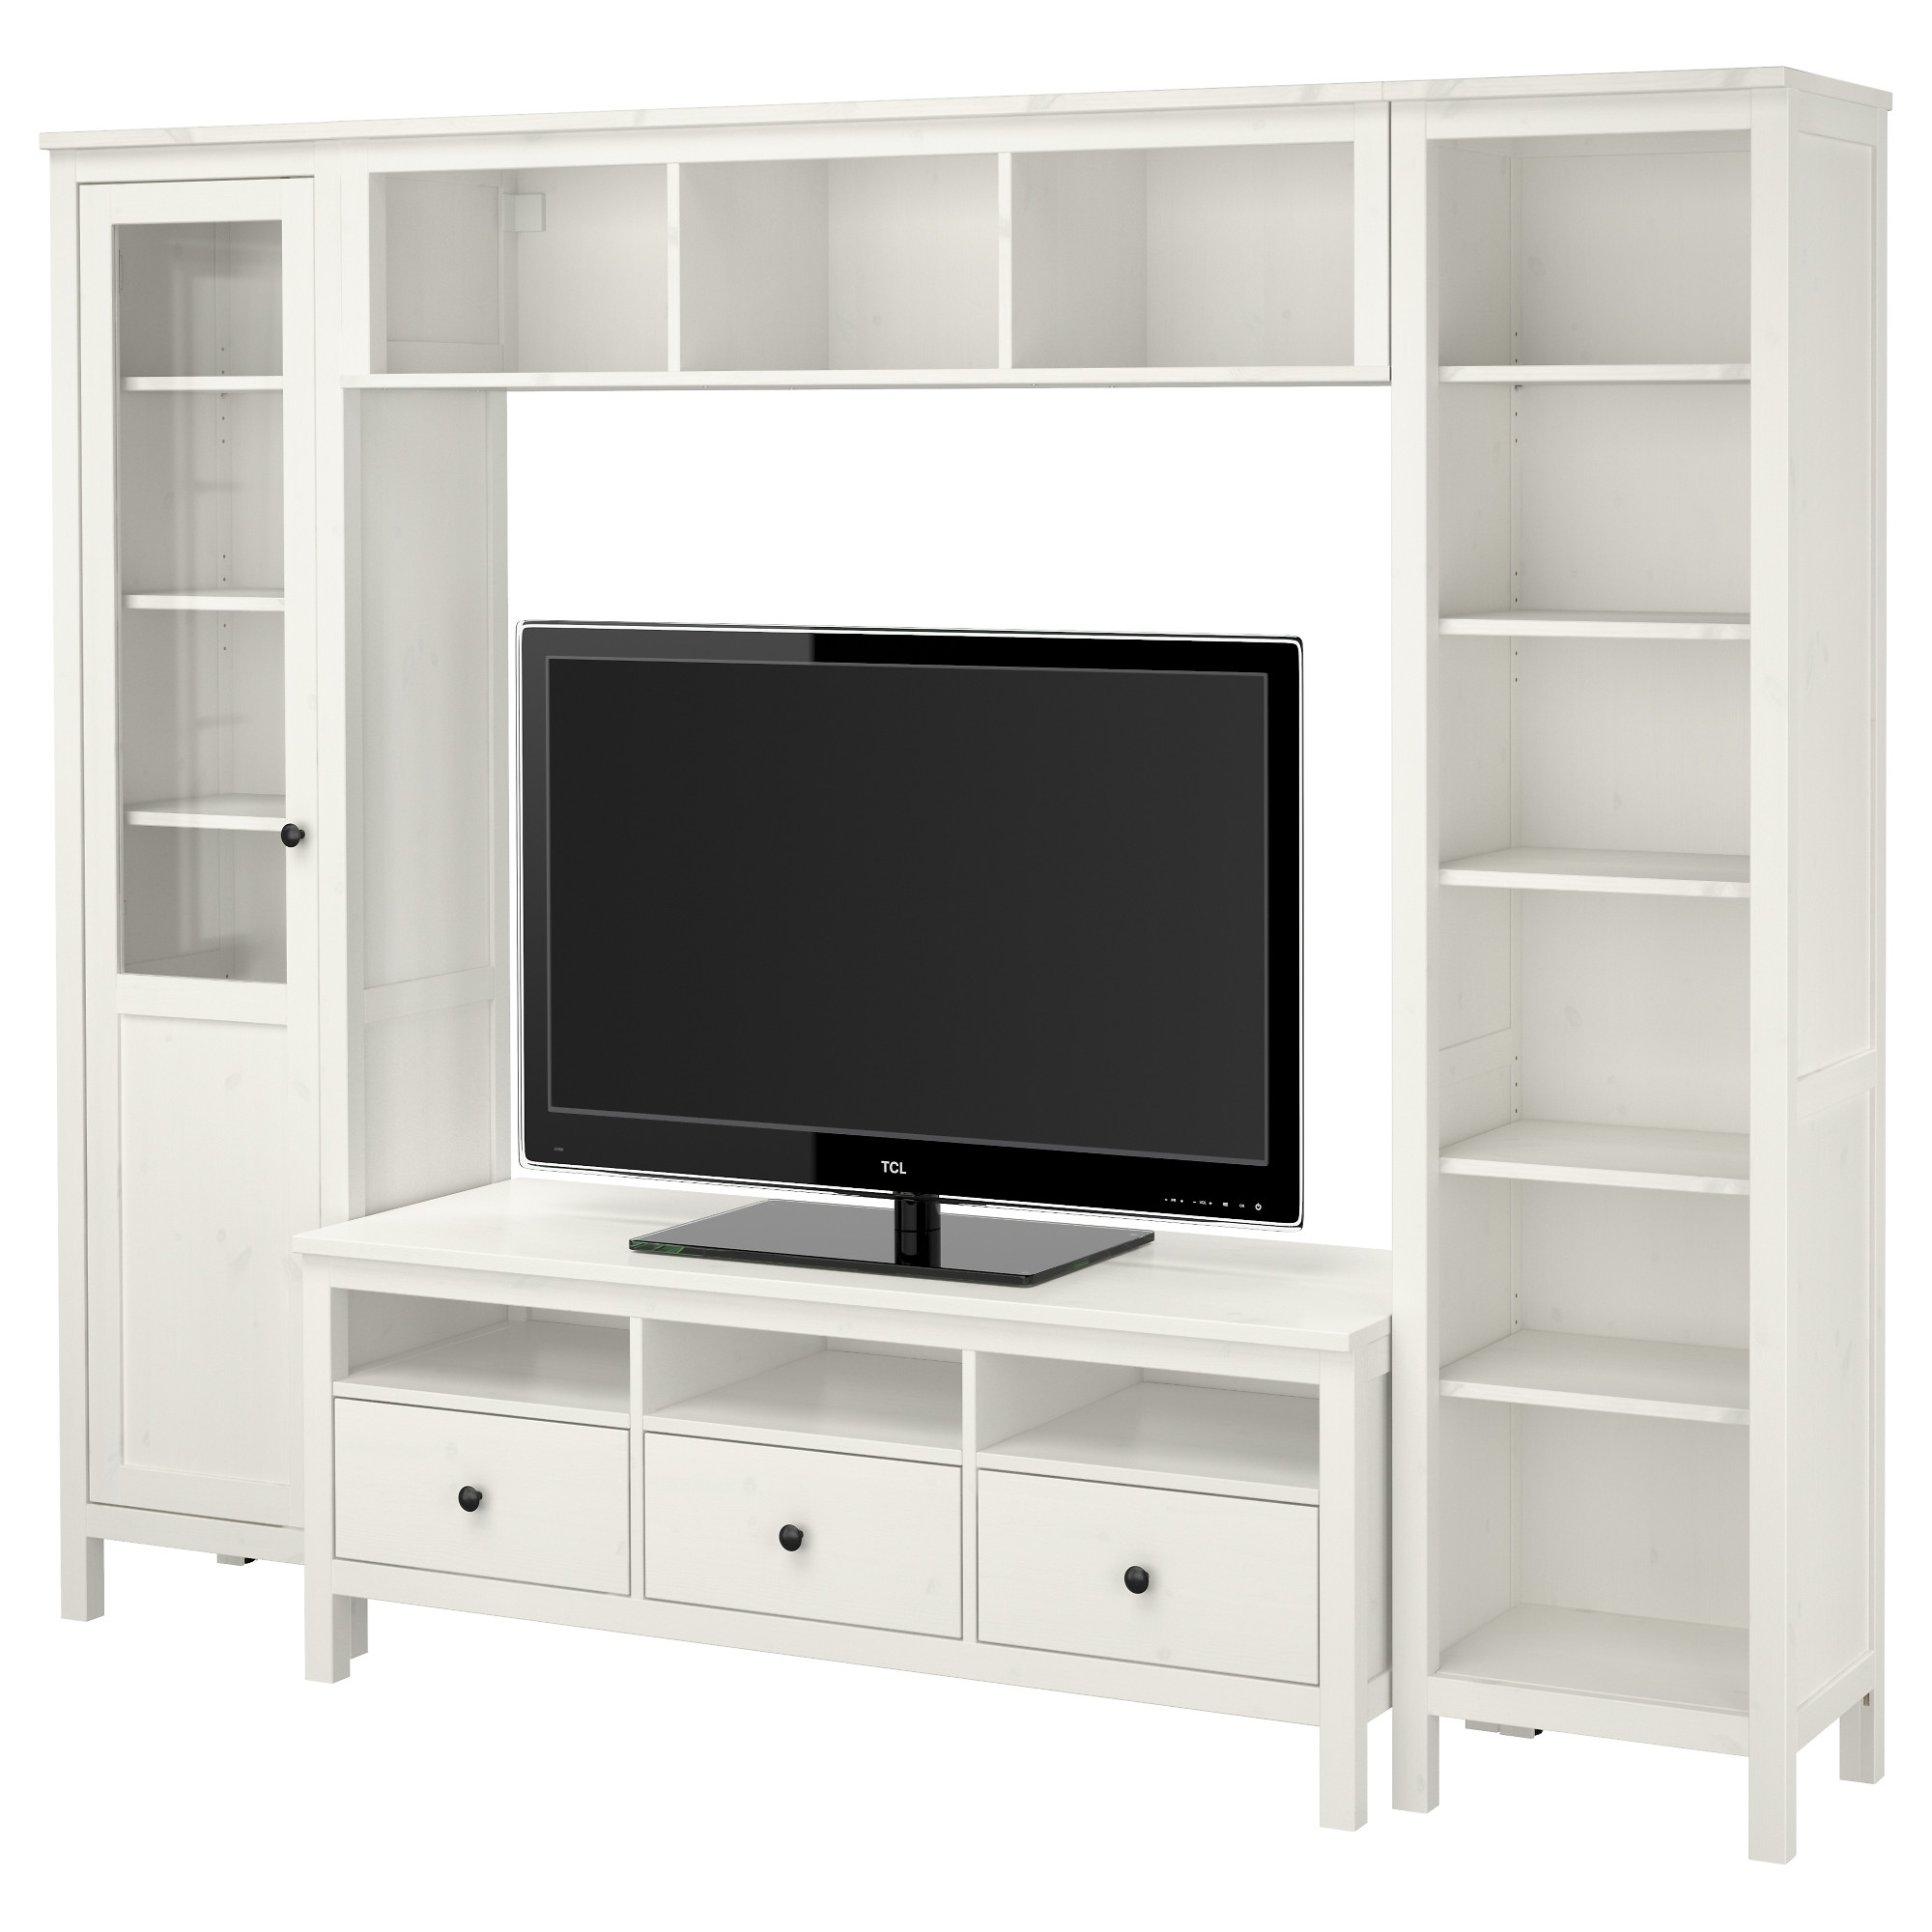 meuble tv escamotable ikea. Black Bedroom Furniture Sets. Home Design Ideas